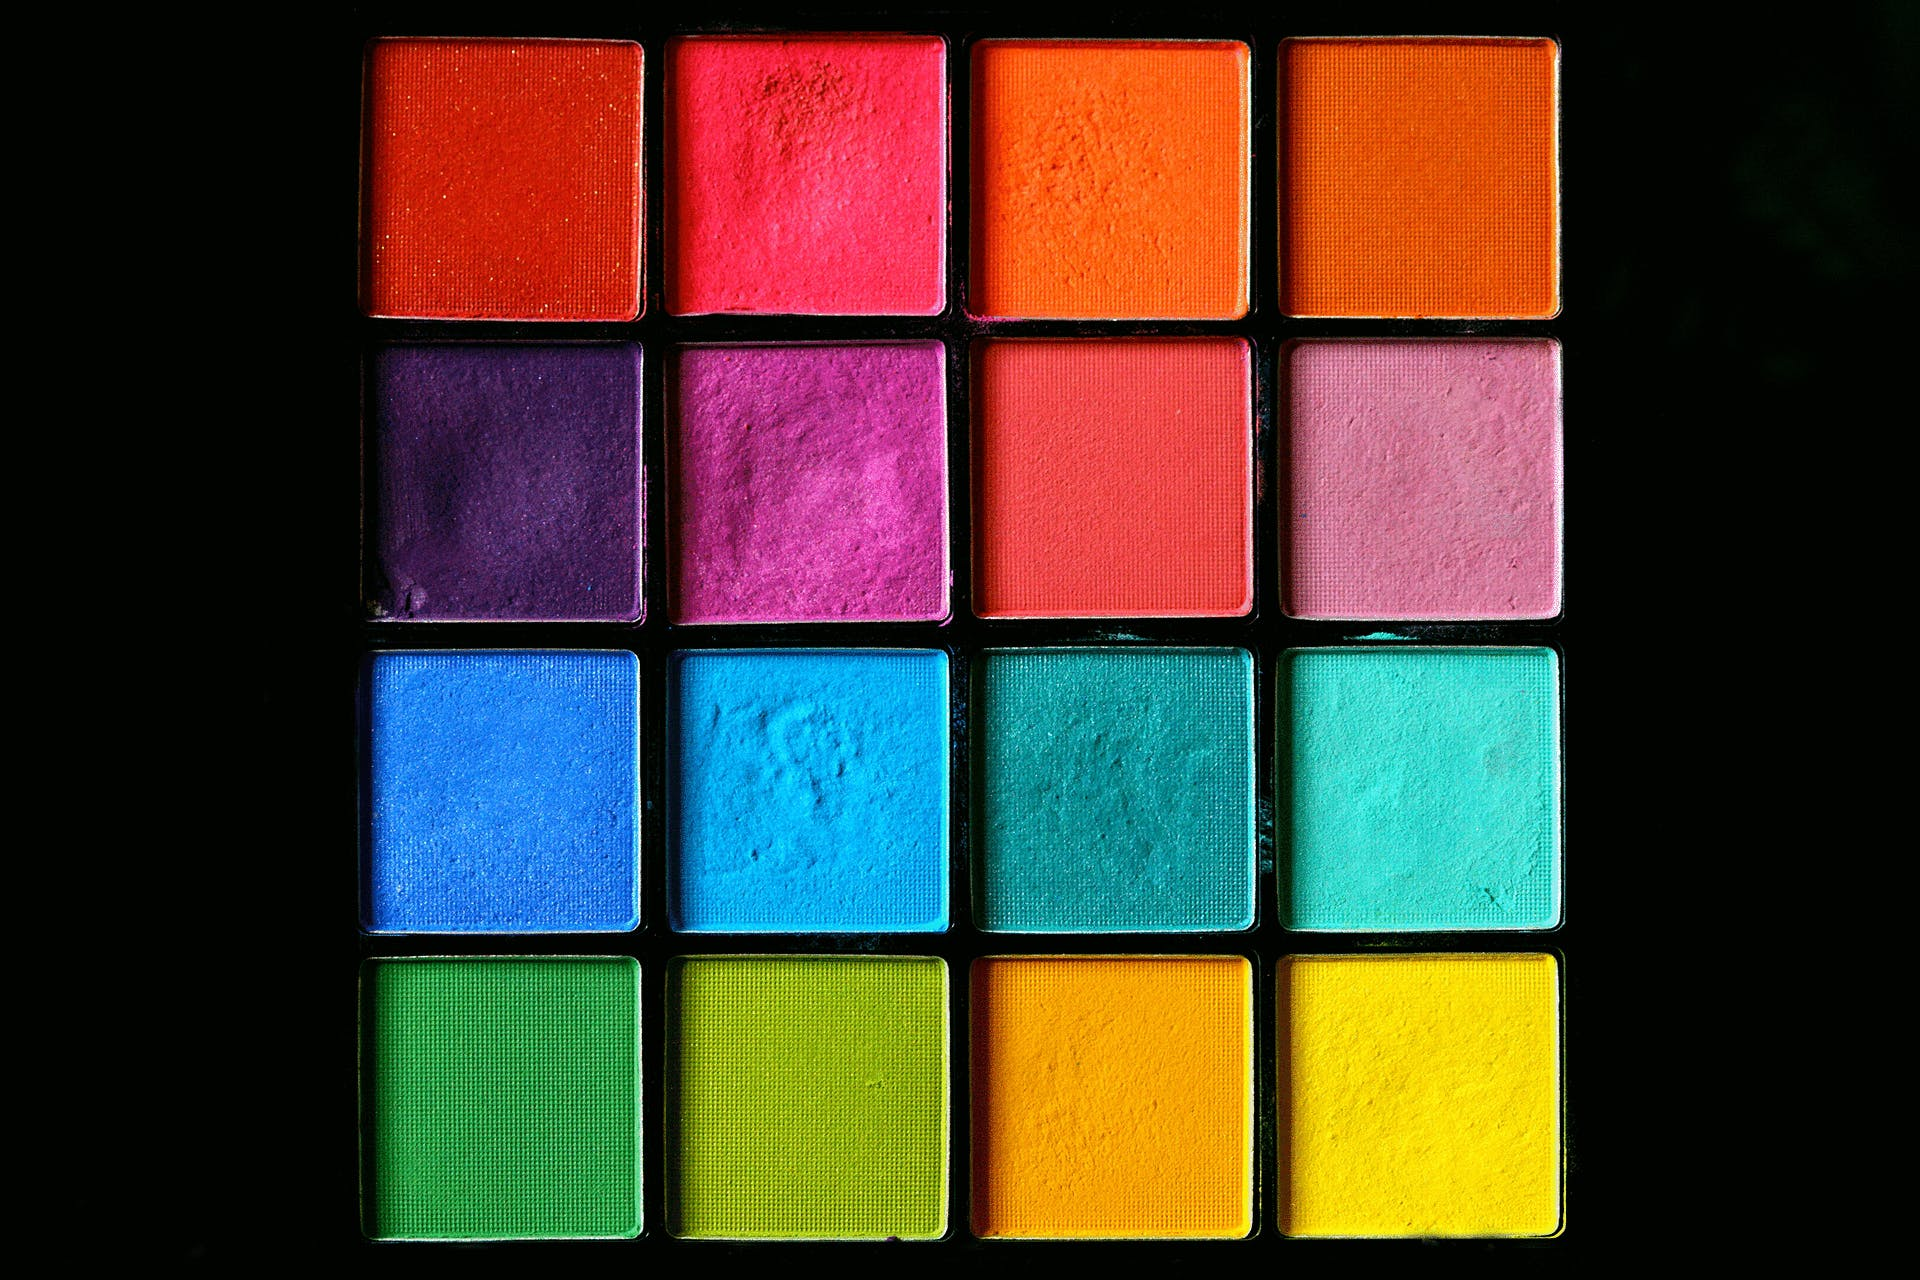 photo of a colorful makeup palette with a black background